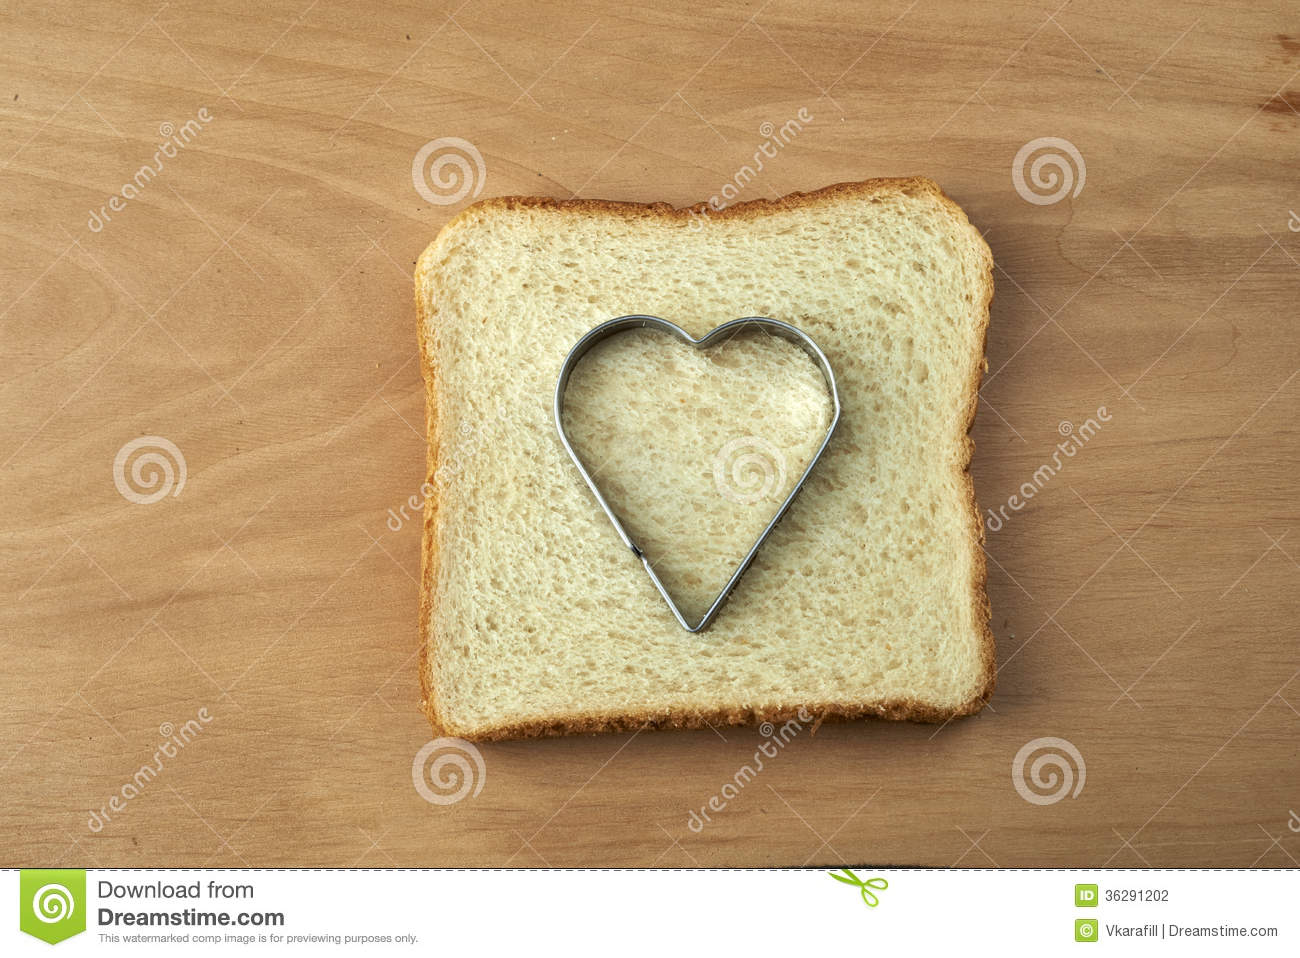 how to cut out bread